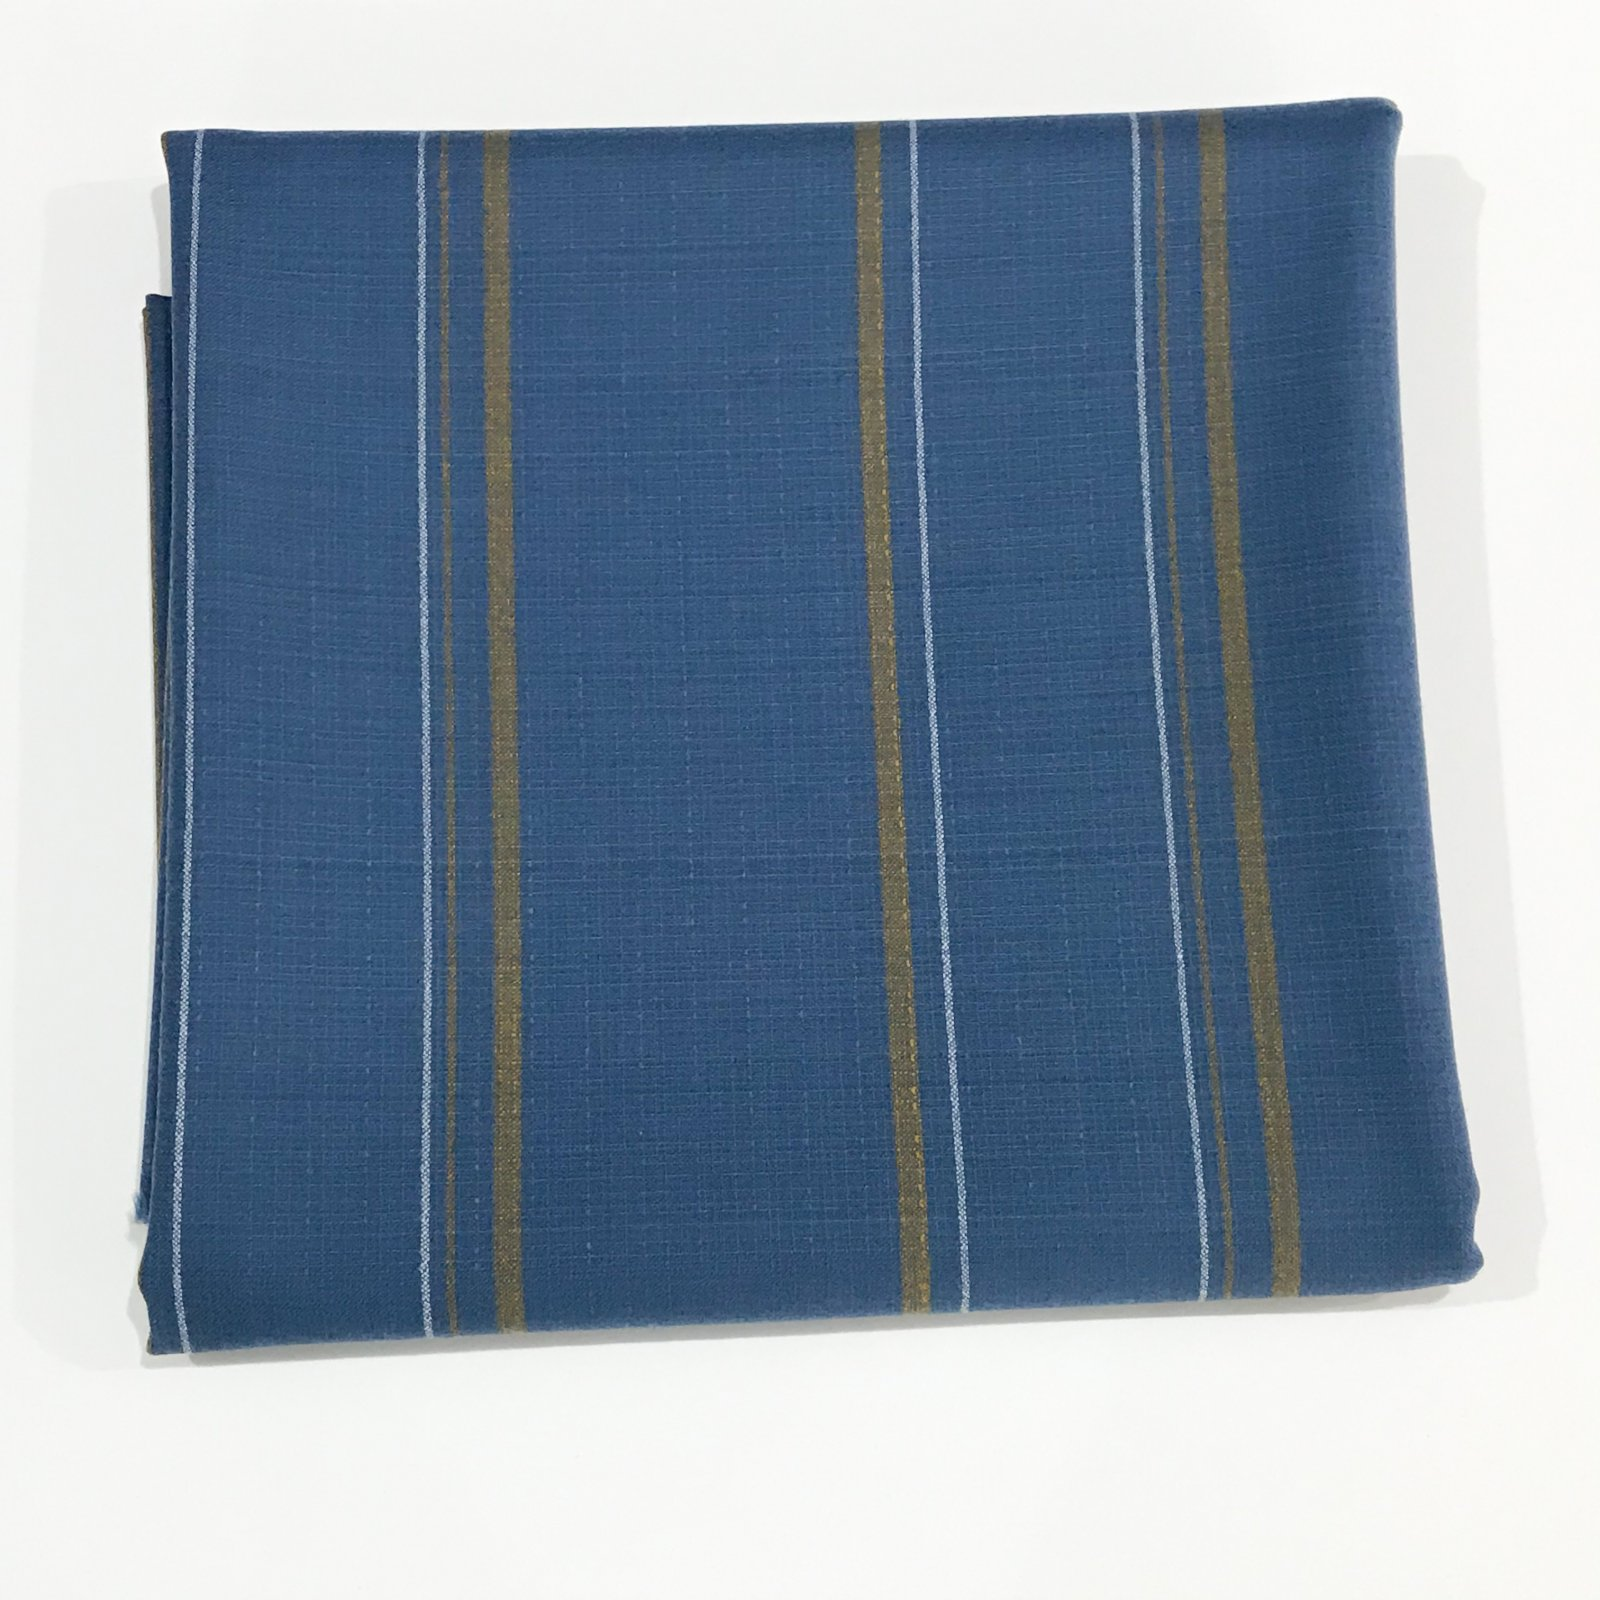 2 yards - Pendleton (TM) Dusty Blue with Gold and White Stripes